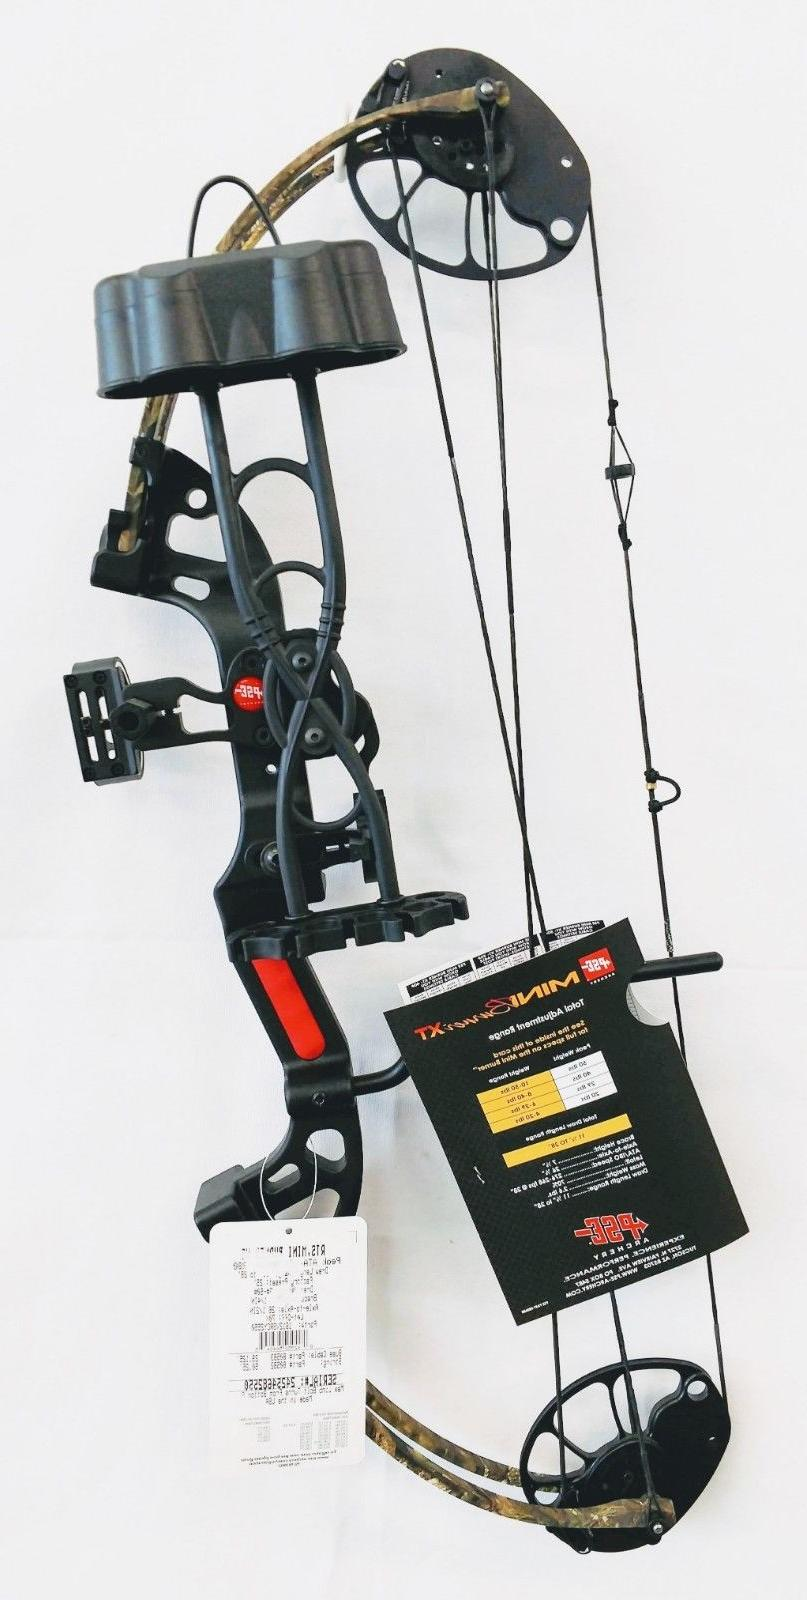 PSE Miniburner to Shoot Package